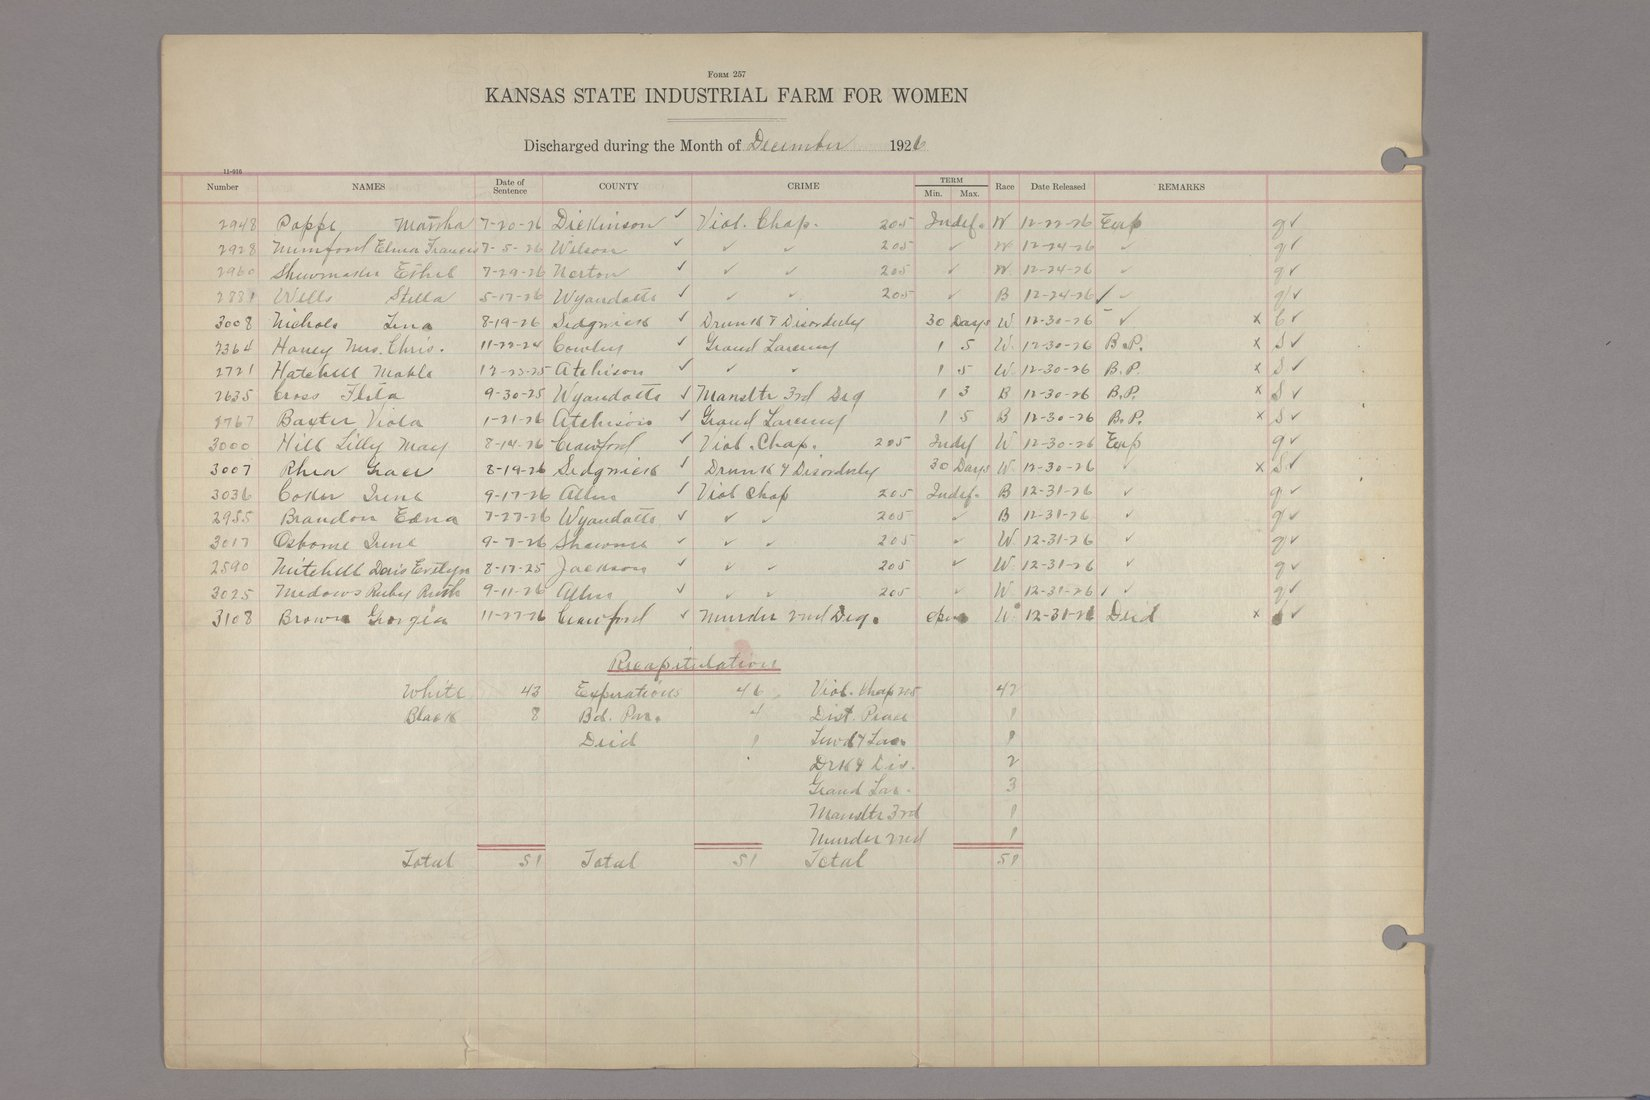 Inmates discharged register, Kansas State Industrial Farm for Women - December, 1926 & recpaitulation page